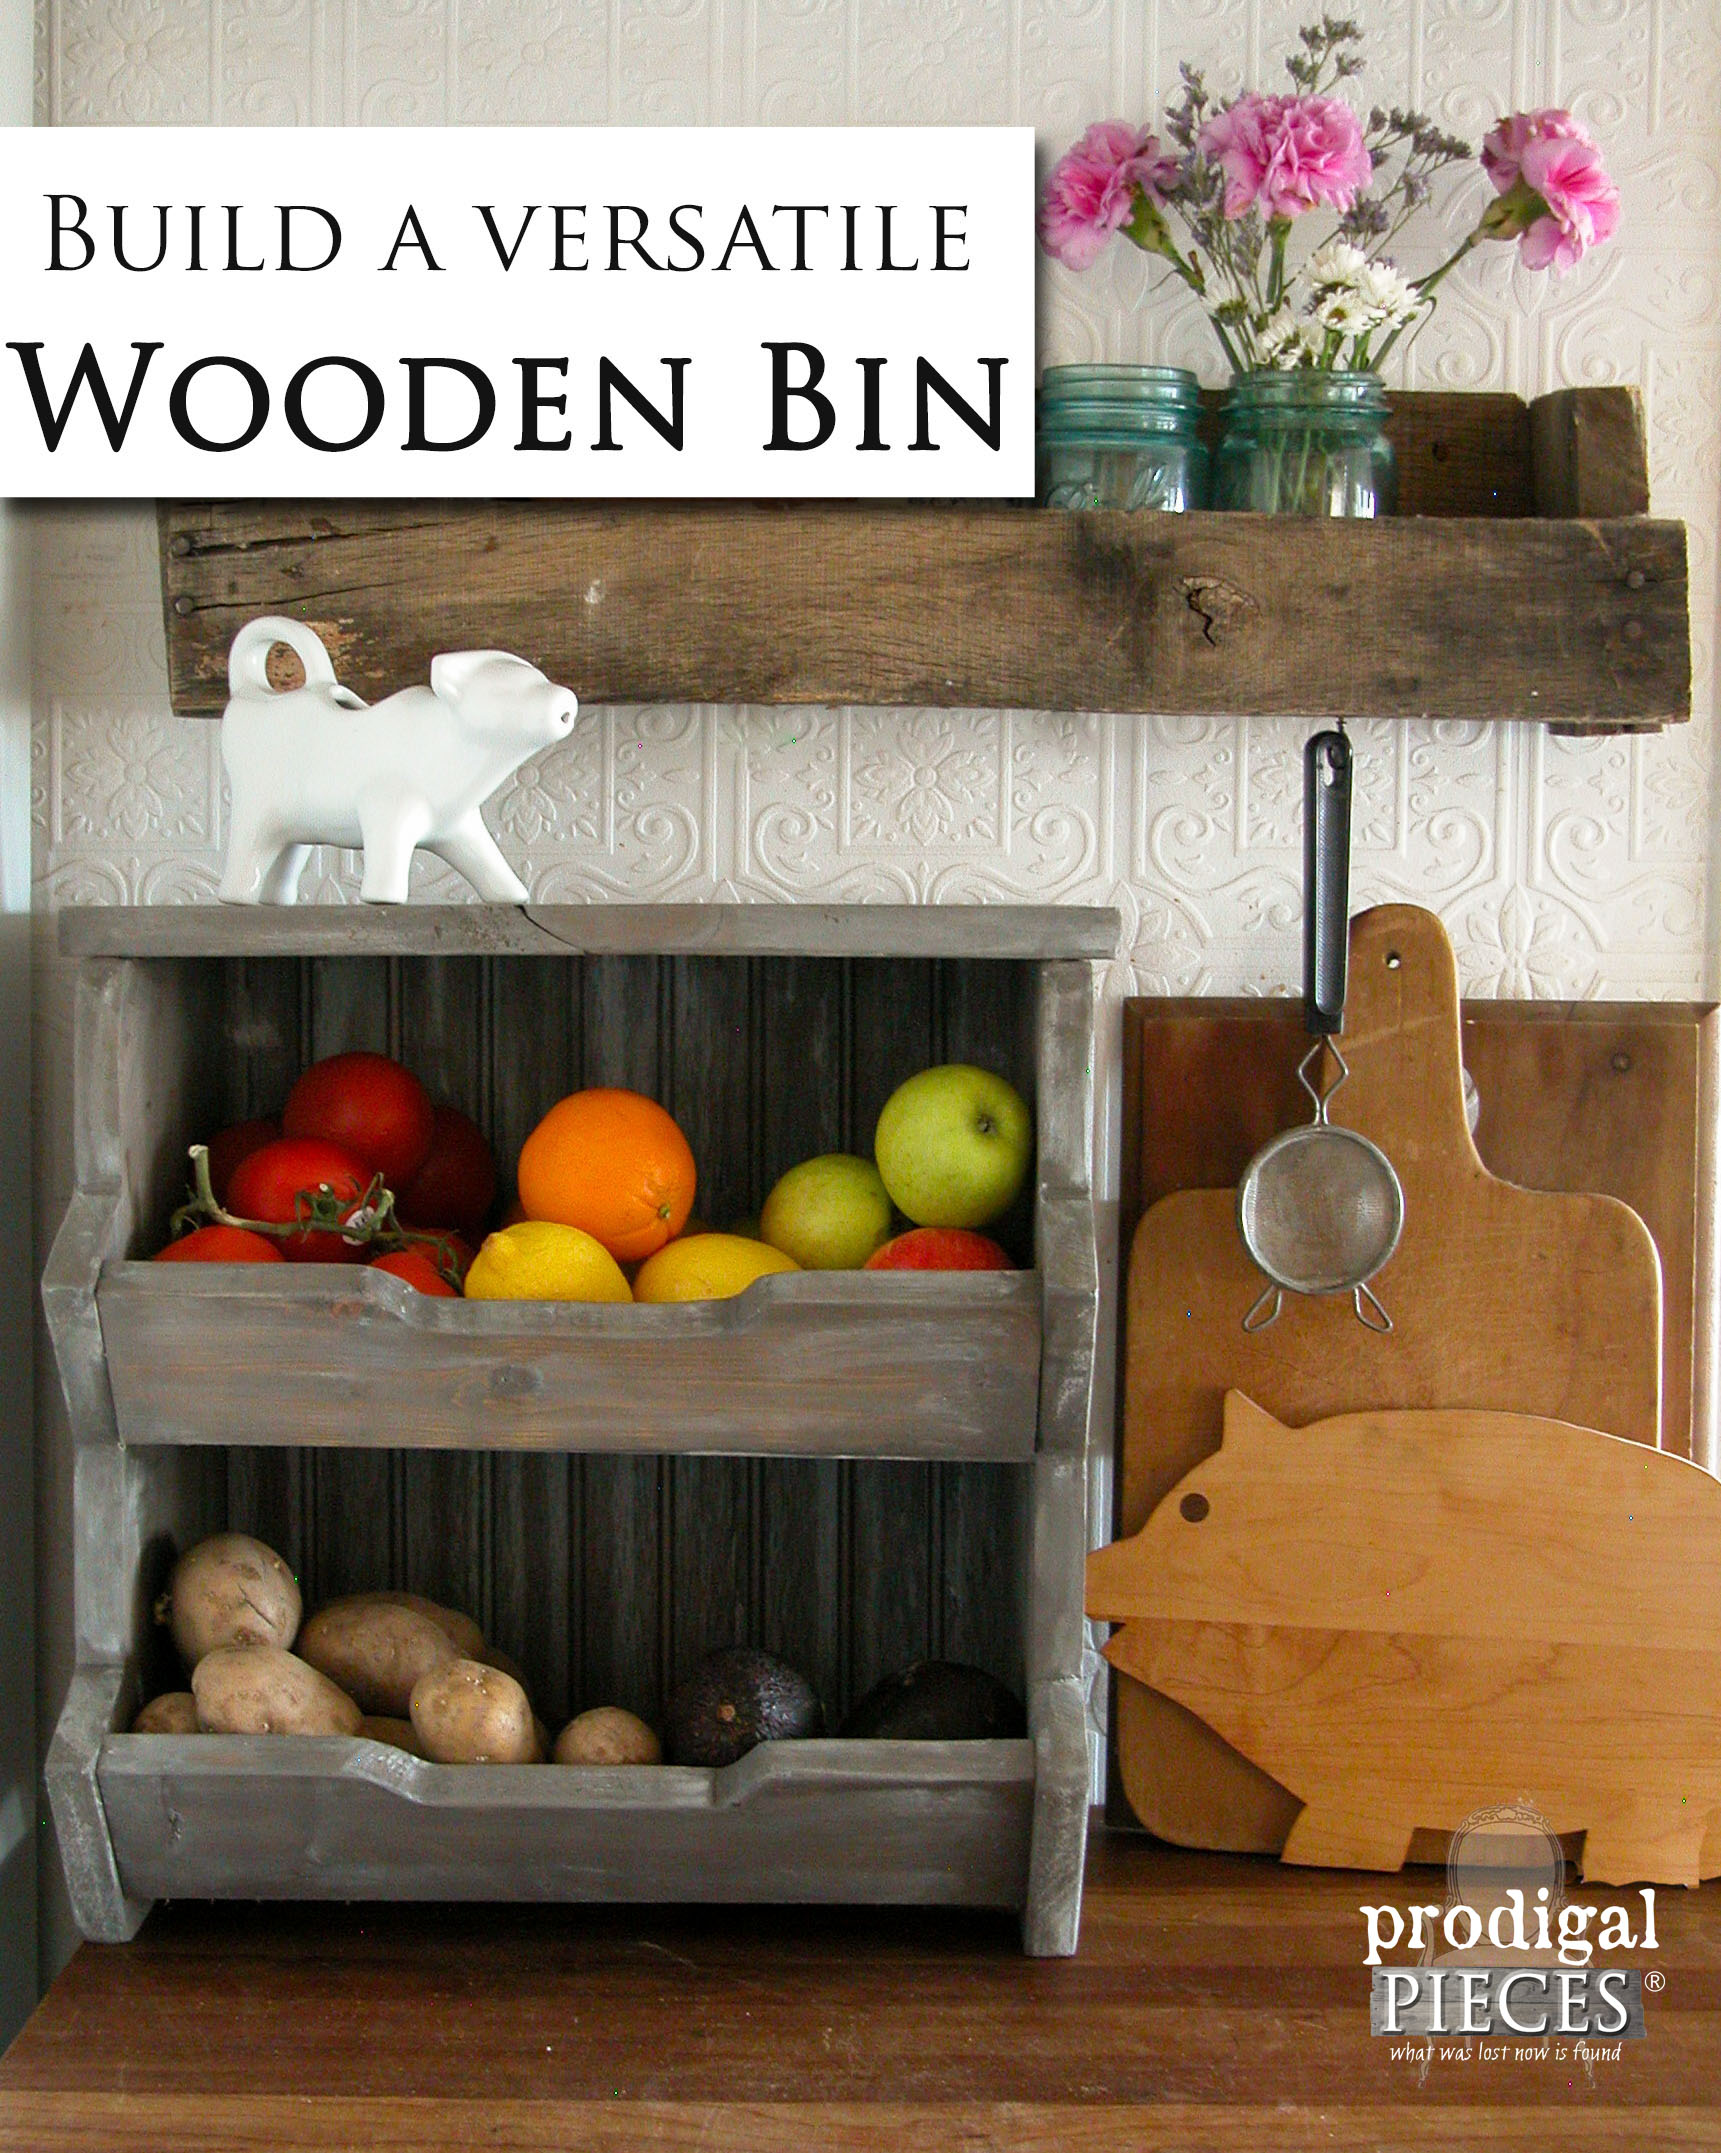 Easy Step-by Step Plans to Build Your Own Wooden Storage Bin by Prodigal Pieces | prodigalpieces.com